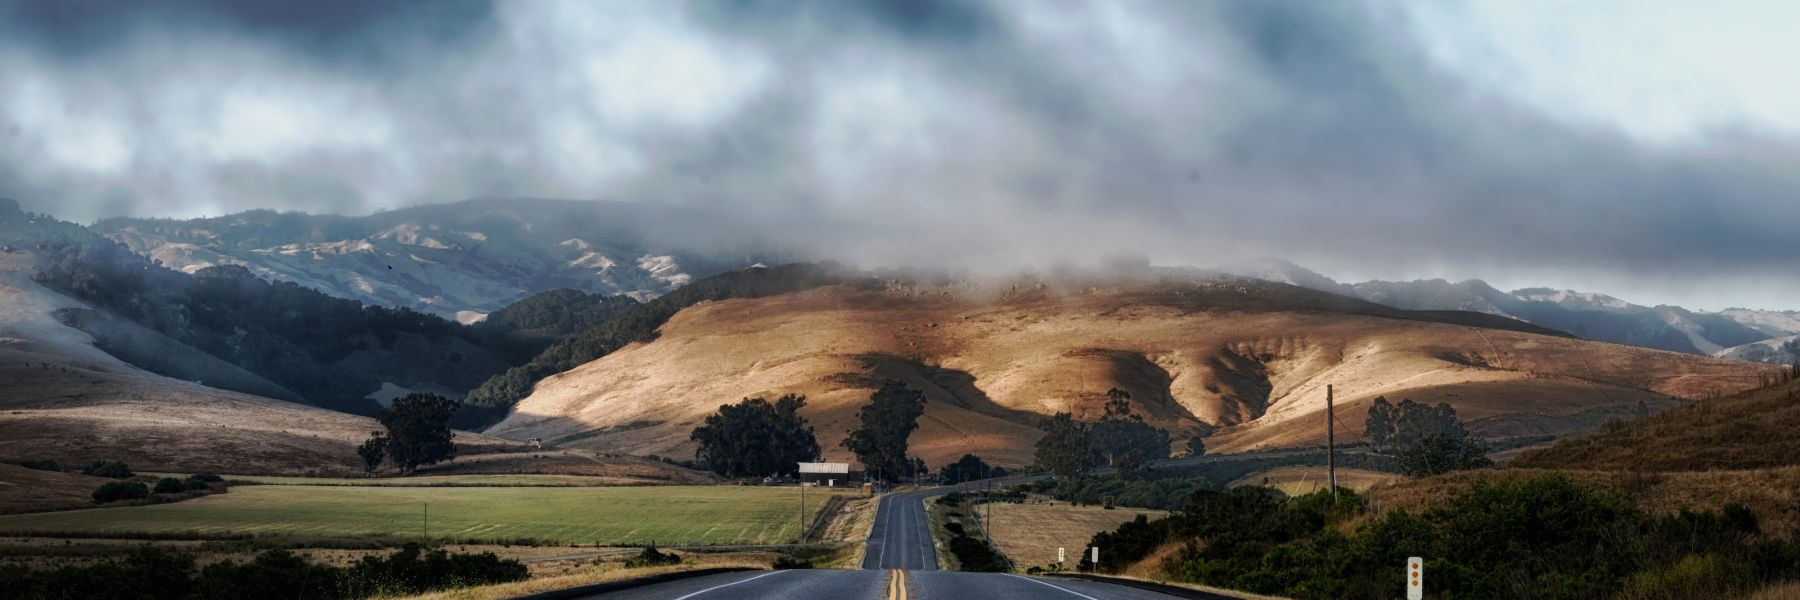 pexels california-road-highway-mountains-63324